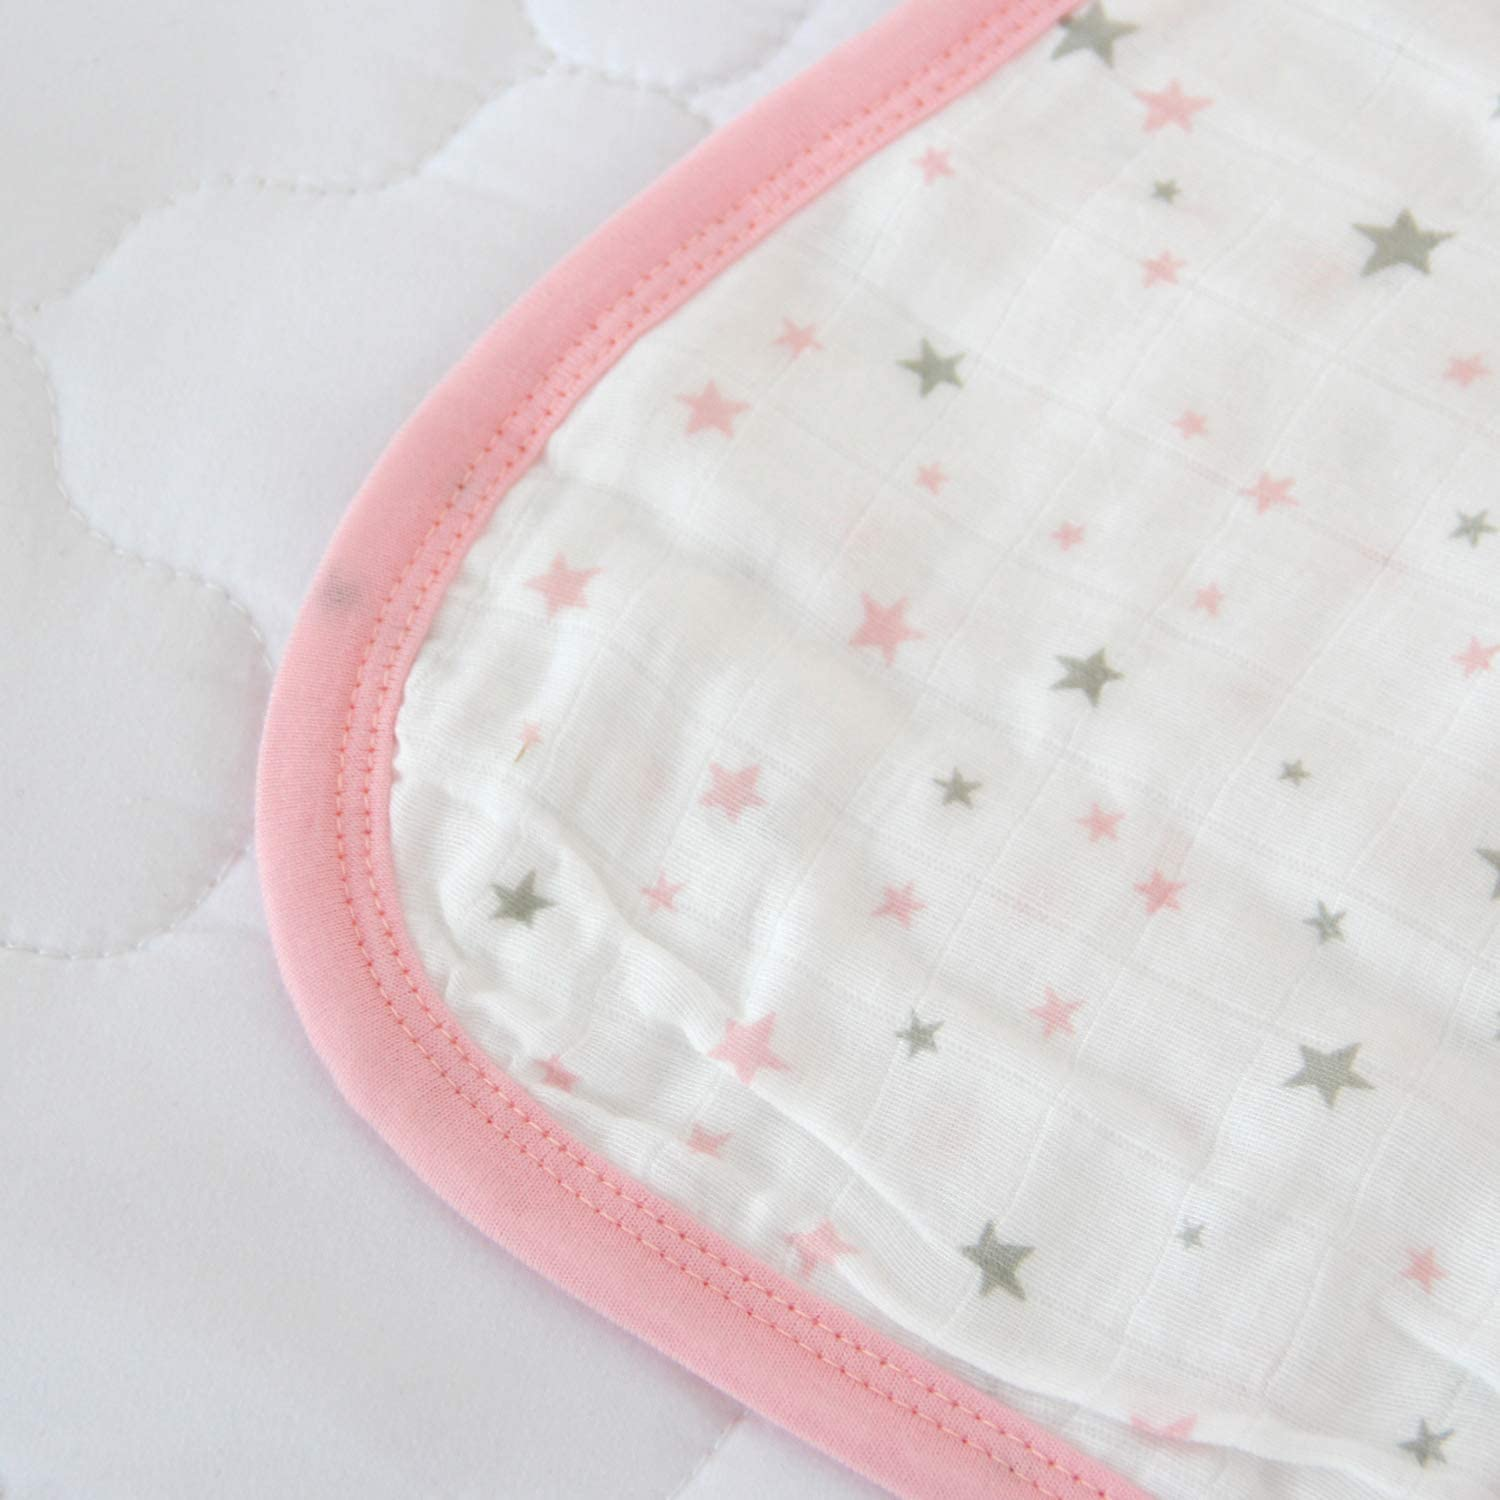 Baby Sleep Bag or Sack 6-12 Months.100/% Cotton Baby Wearable Blanket with 2-Way Zipper,Ideal for Summer 0.5 TOG Pink Star. Softness and Freshness in one Single Fabric Layer.Fits Infants Newborns